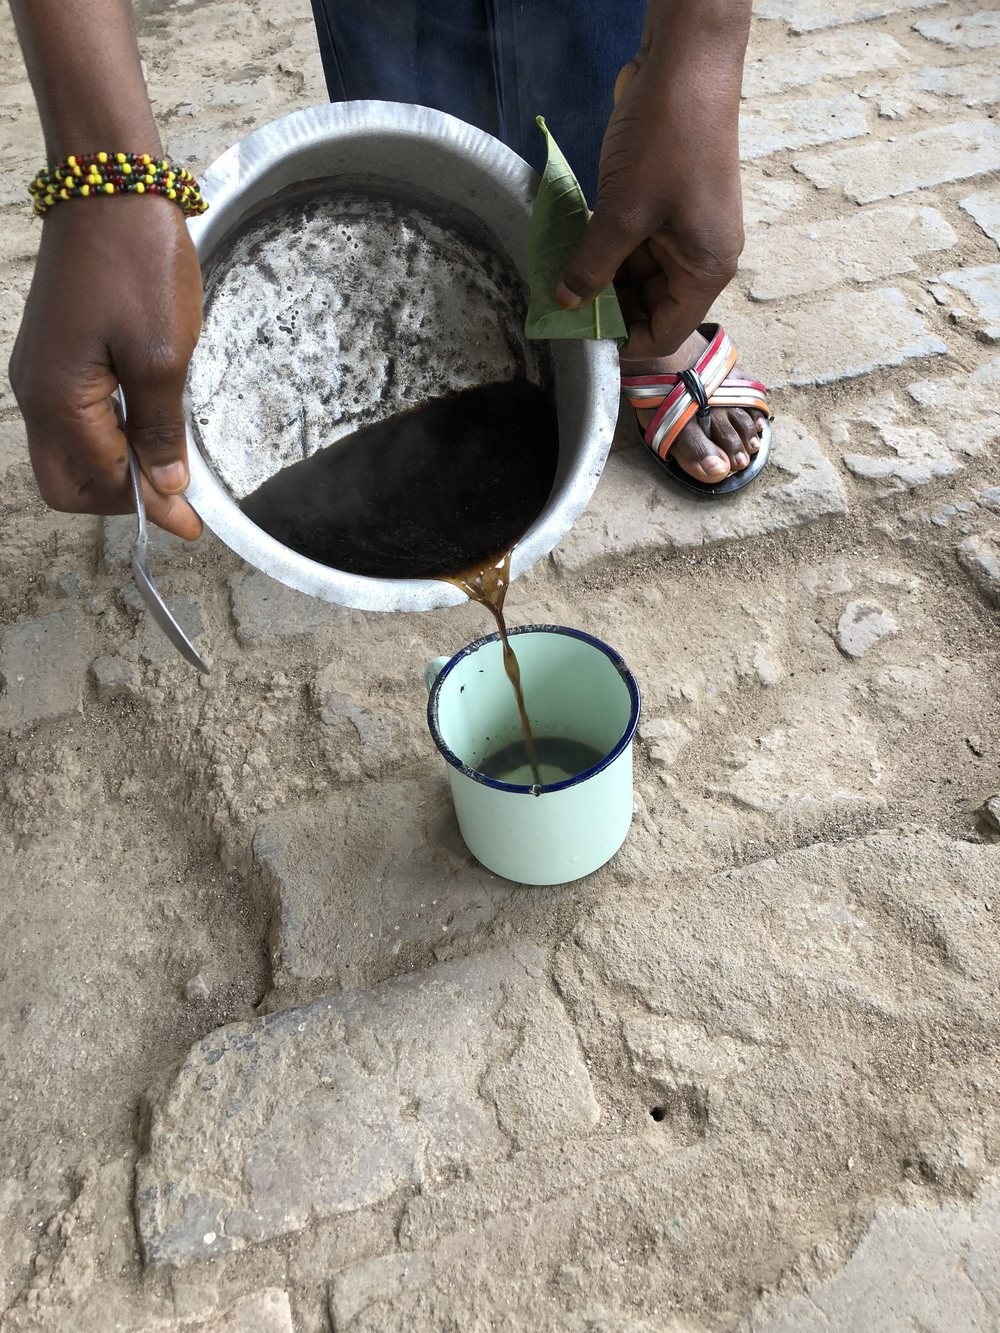 Morning coffee made with local beans. Often, people flavor the boiled water with a local herb that tastes like lemon grass, which gives a cool new dimension to the taste.